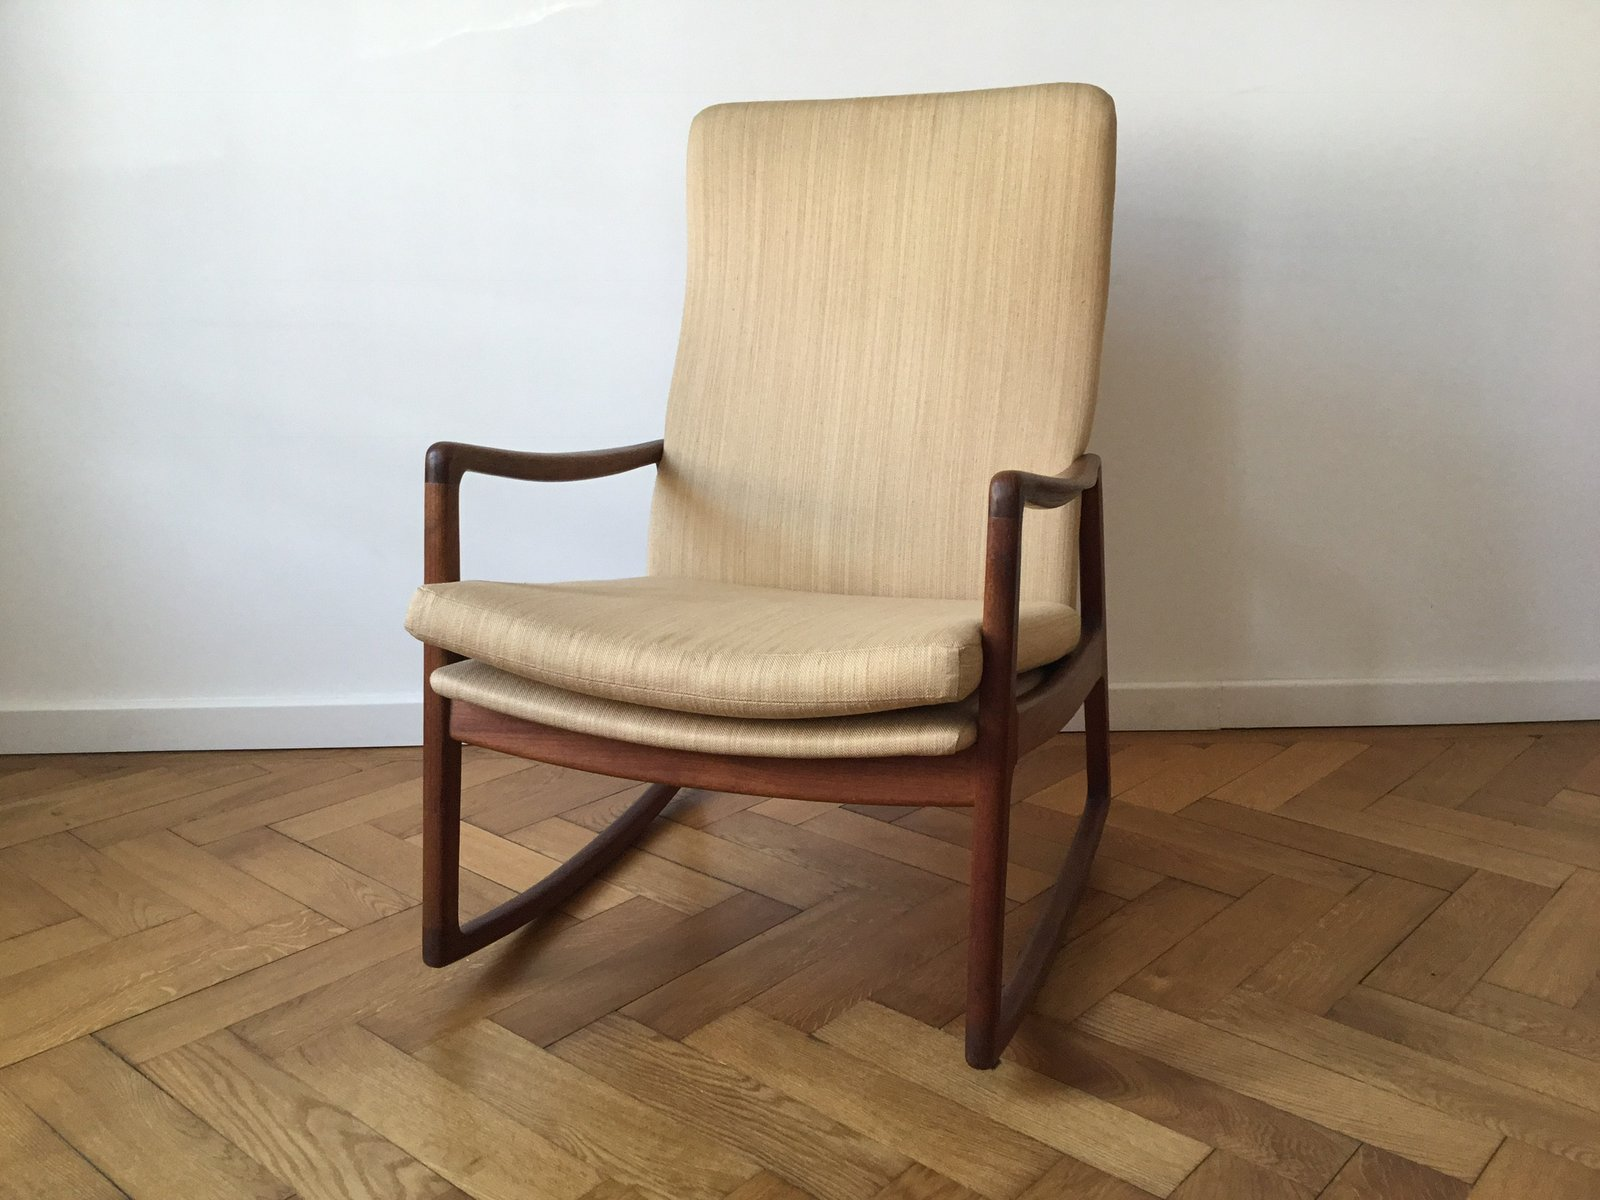 Model 160 Rocking Chair By Ole Wanscher 1950s For Sale At